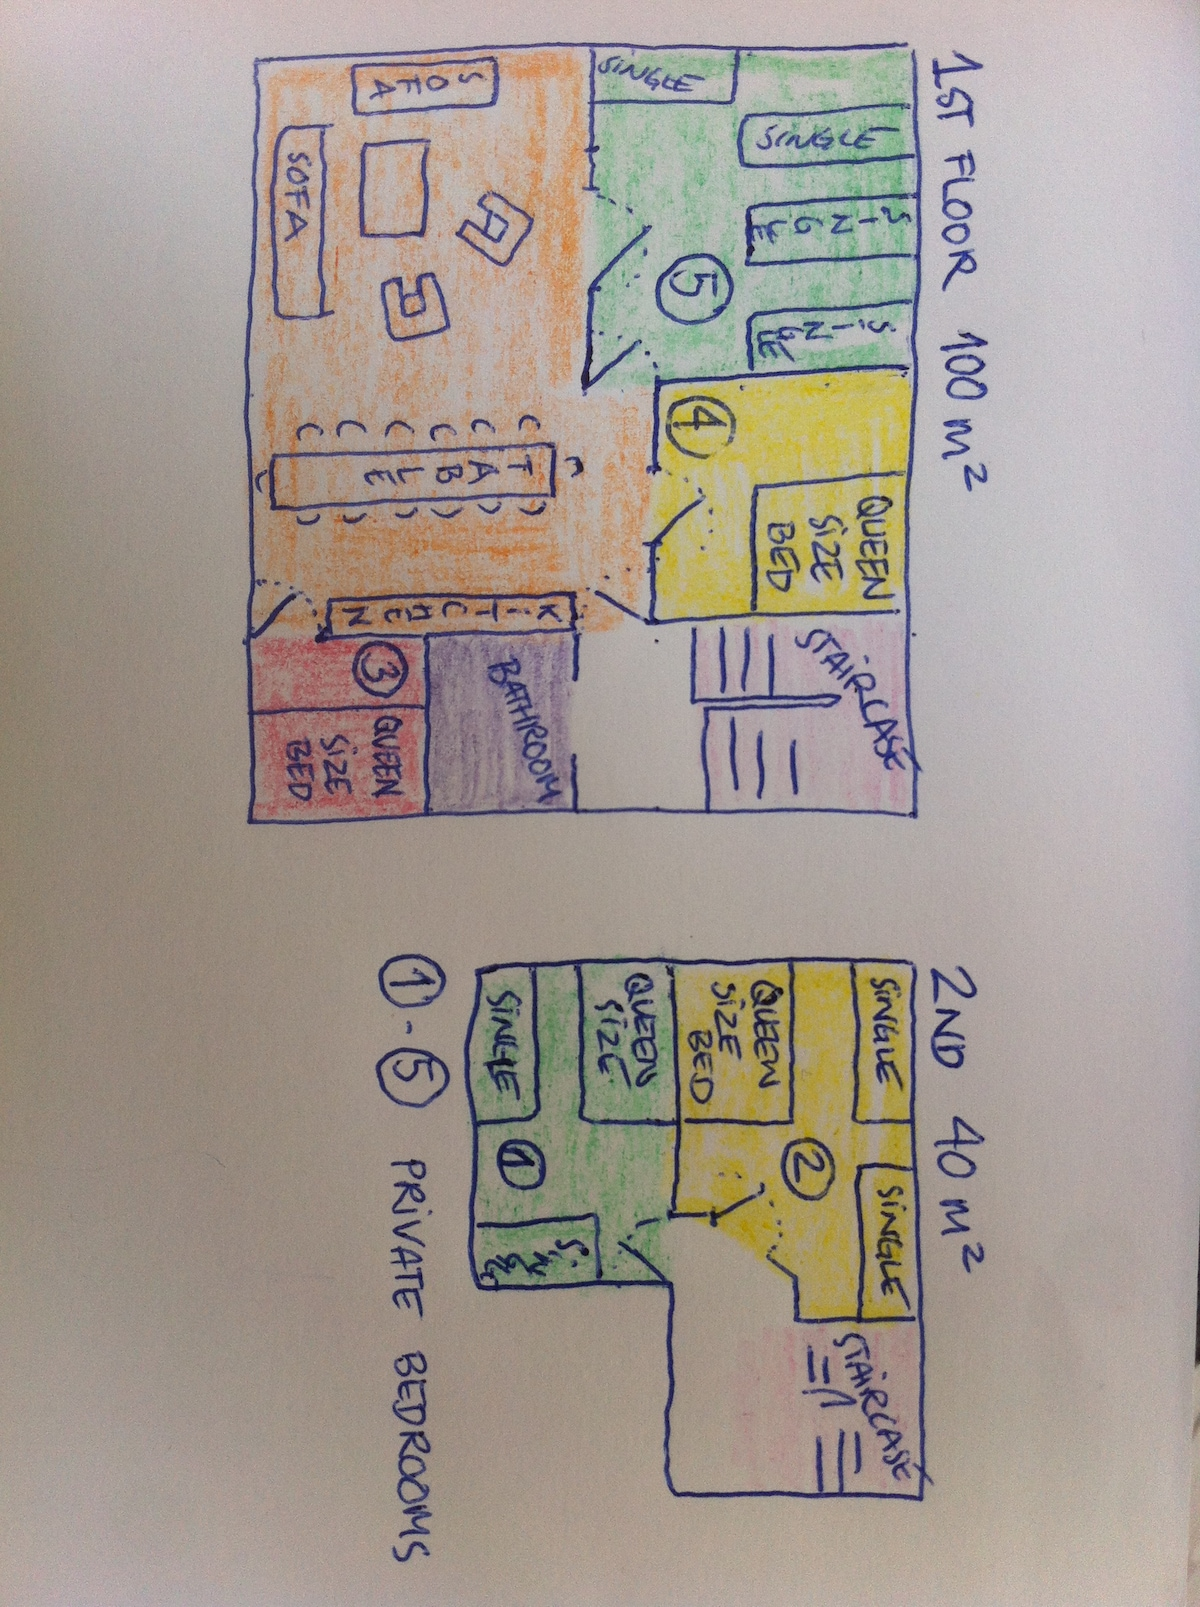 Floor plan - please let me know which beds in room 1-5 to prepare for you! 1 single bed extra is possible.